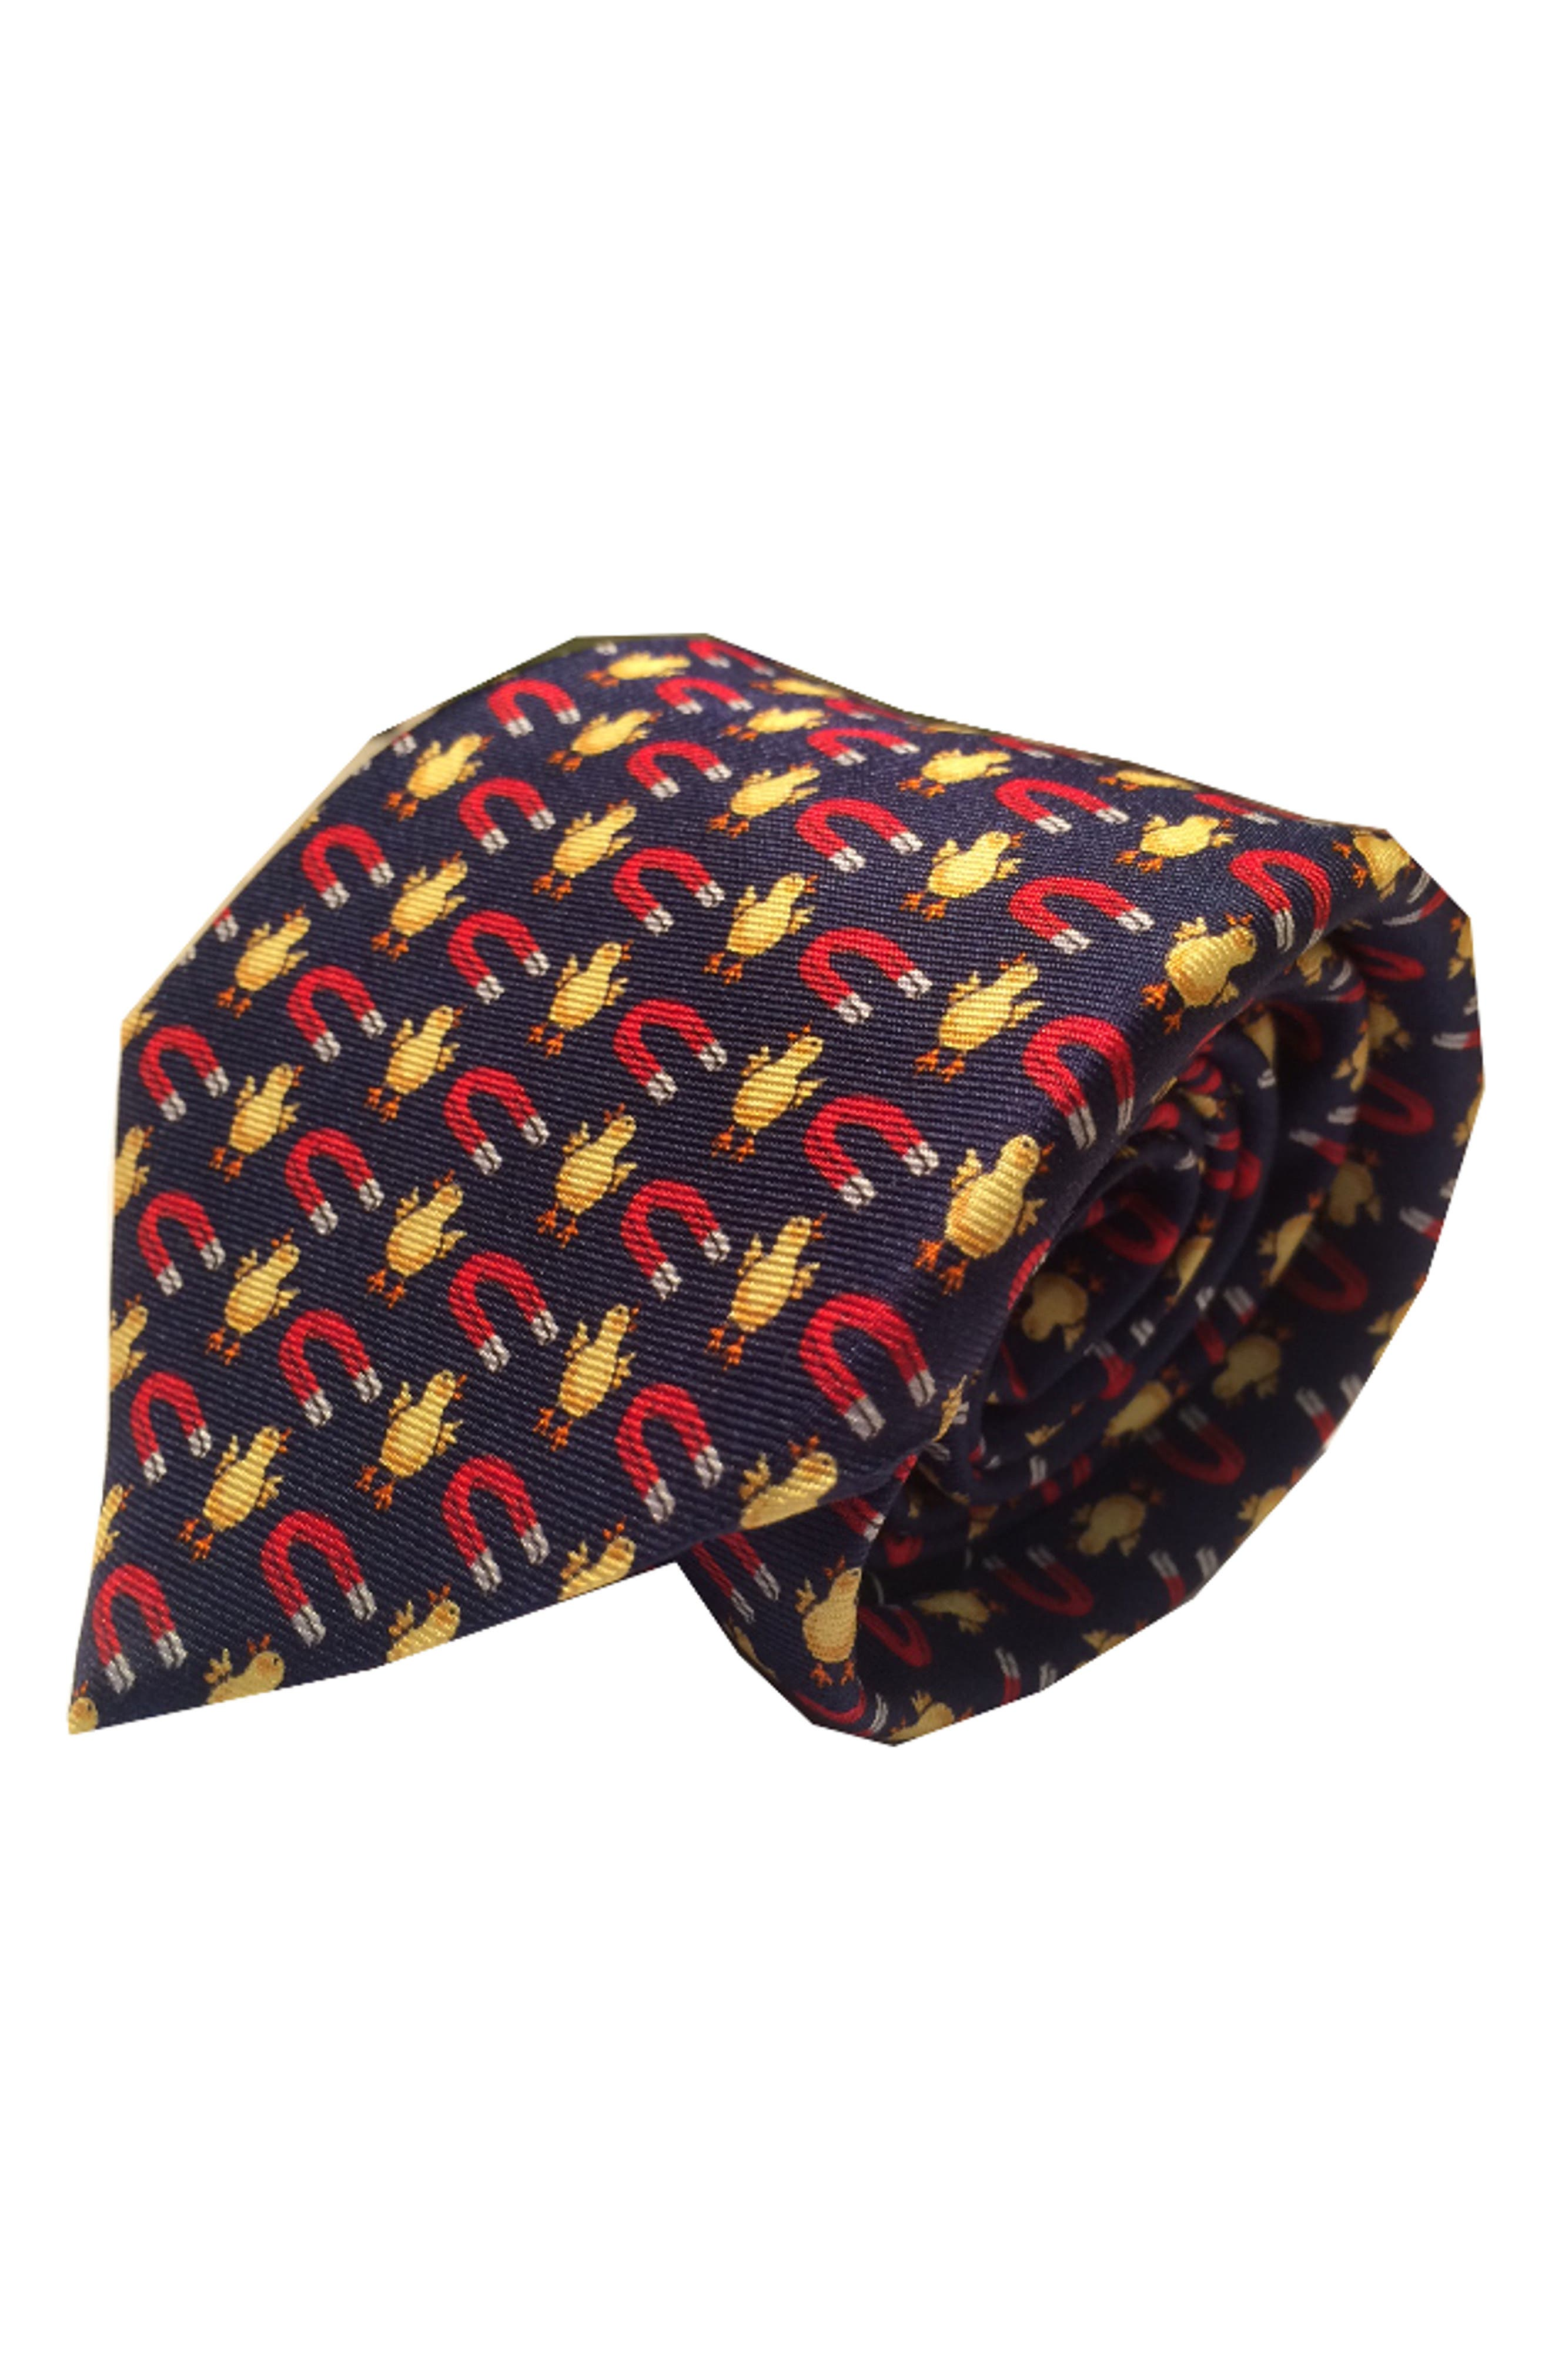 Chick Magnet Silk Tie,                             Main thumbnail 1, color,                             Navy